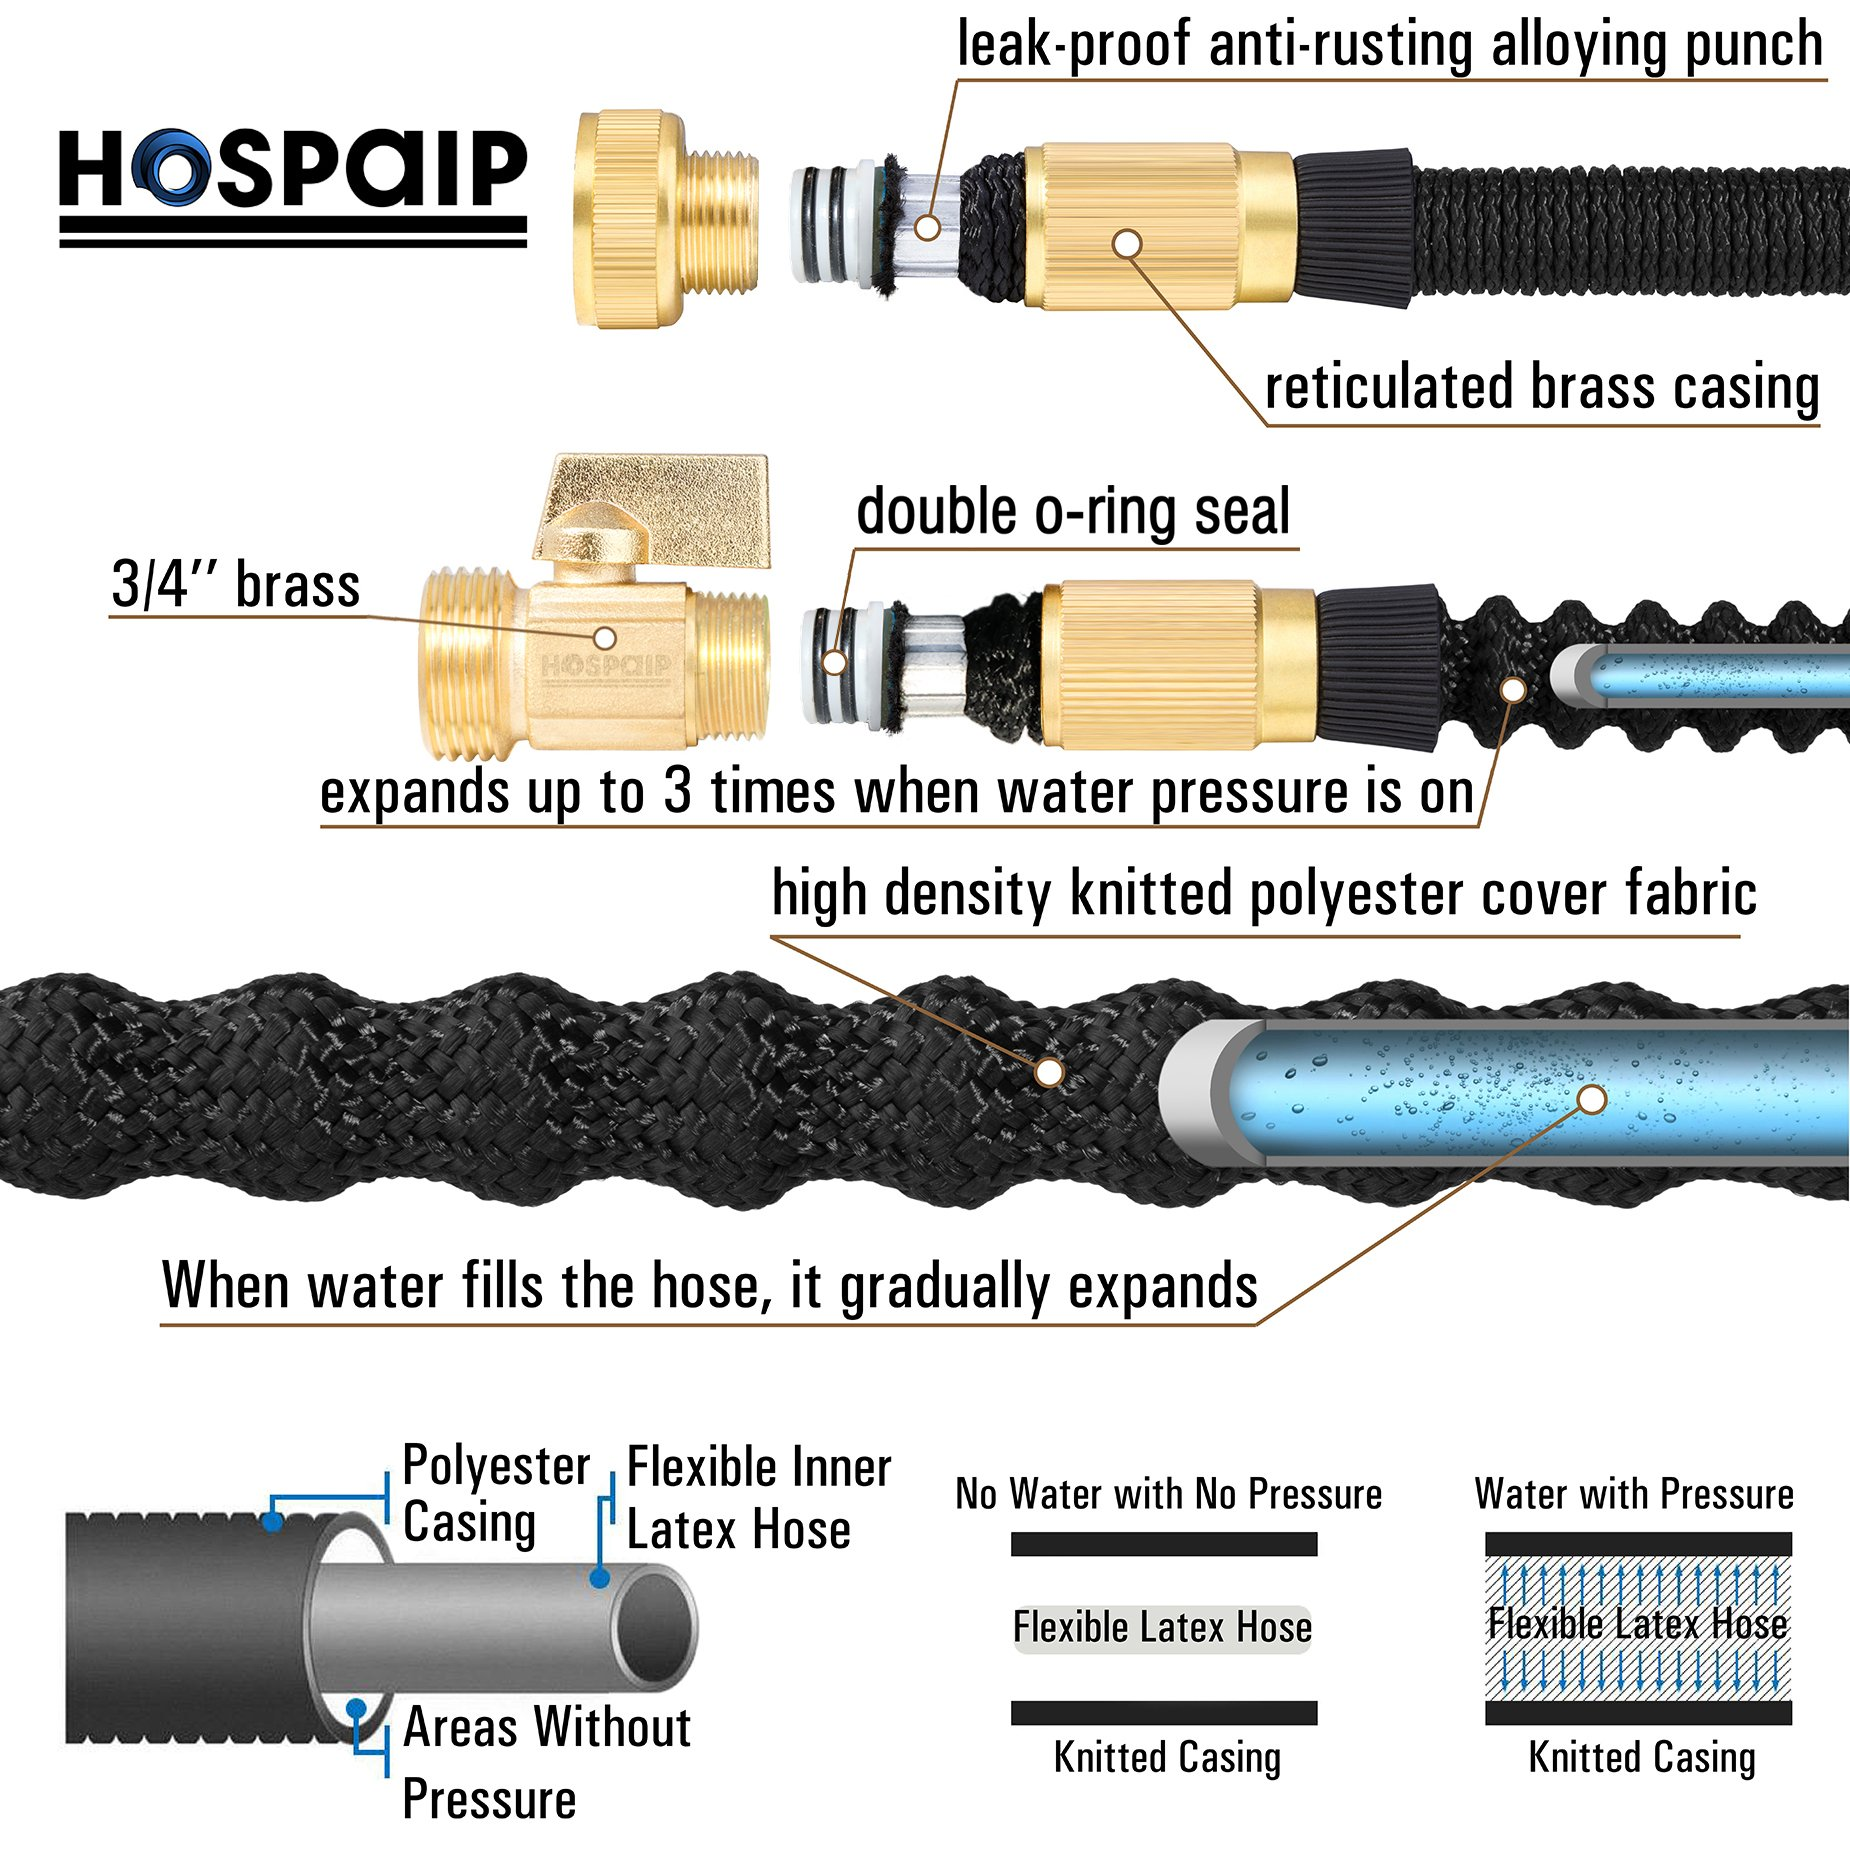 Hospaip 50ft Garden Hose - ALL NEW Expandable Water Hose with Double Latex Core, 3/4 Solid Brass Fittings, Extra Strength Fabric - Flexible Expanding Hose with Metal 8 Function Spray Nozzle by by Hospaip (Image #4)